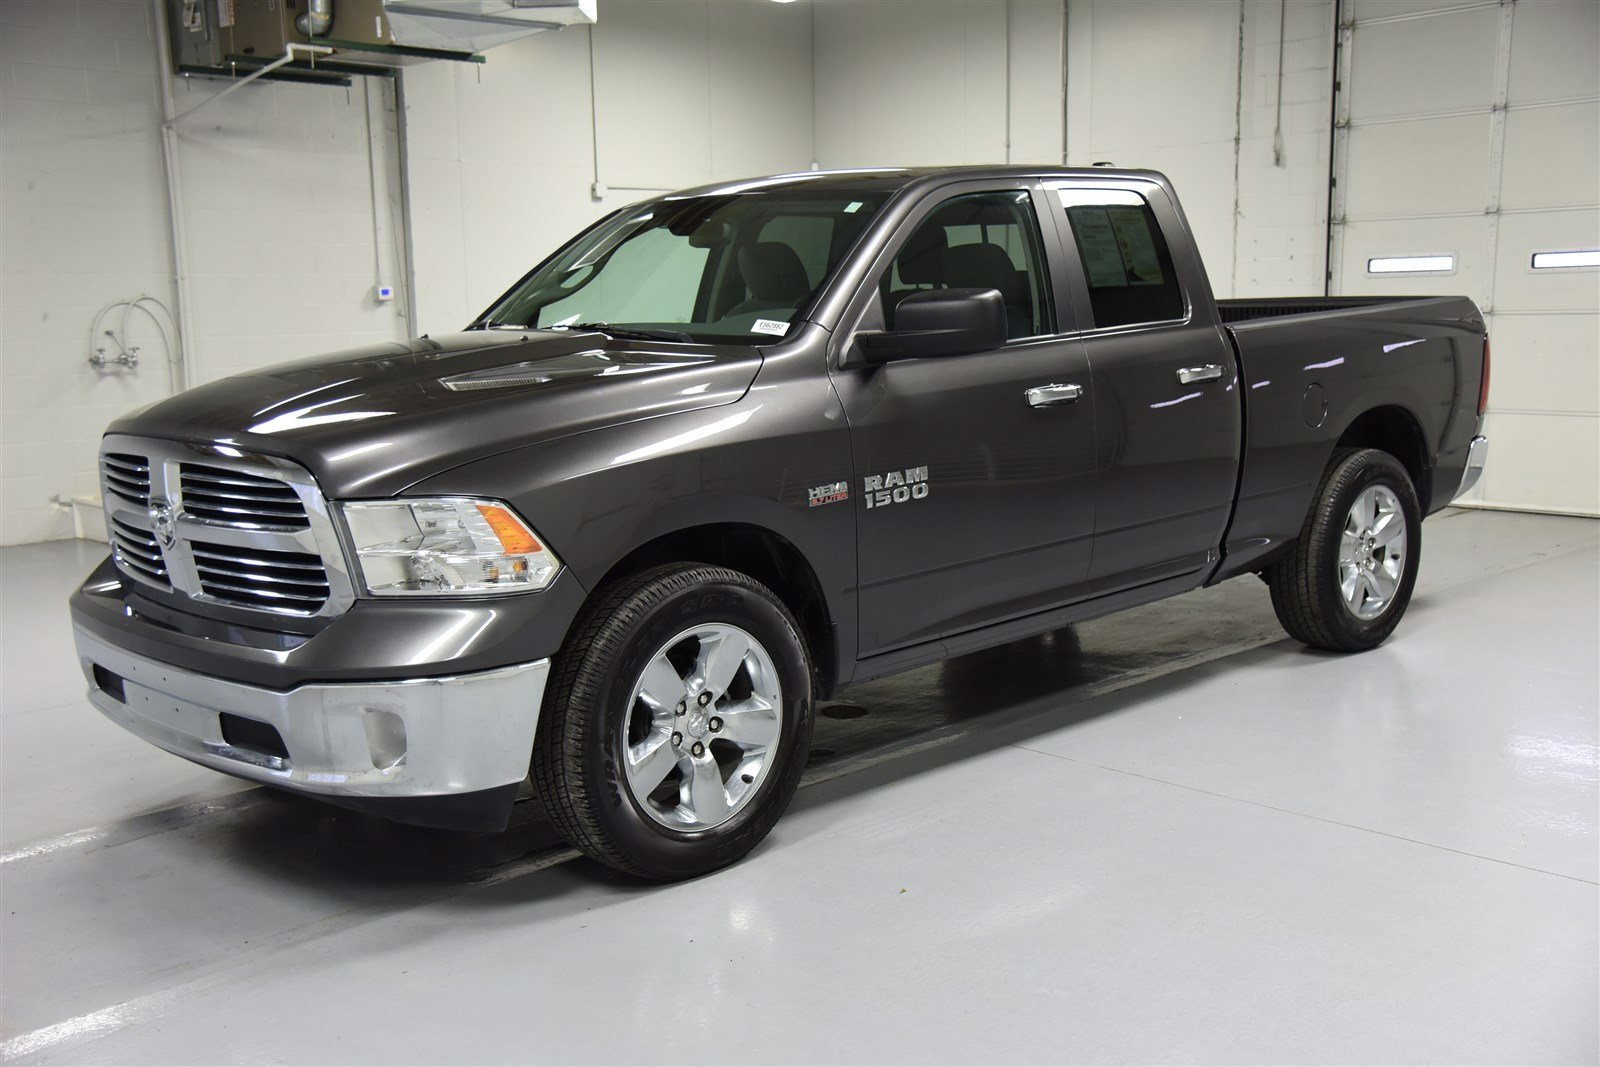 pre owned 2015 dodge ram 1500 quad cab big horn crew cab pickup in wichita e562882 super car guys. Black Bedroom Furniture Sets. Home Design Ideas